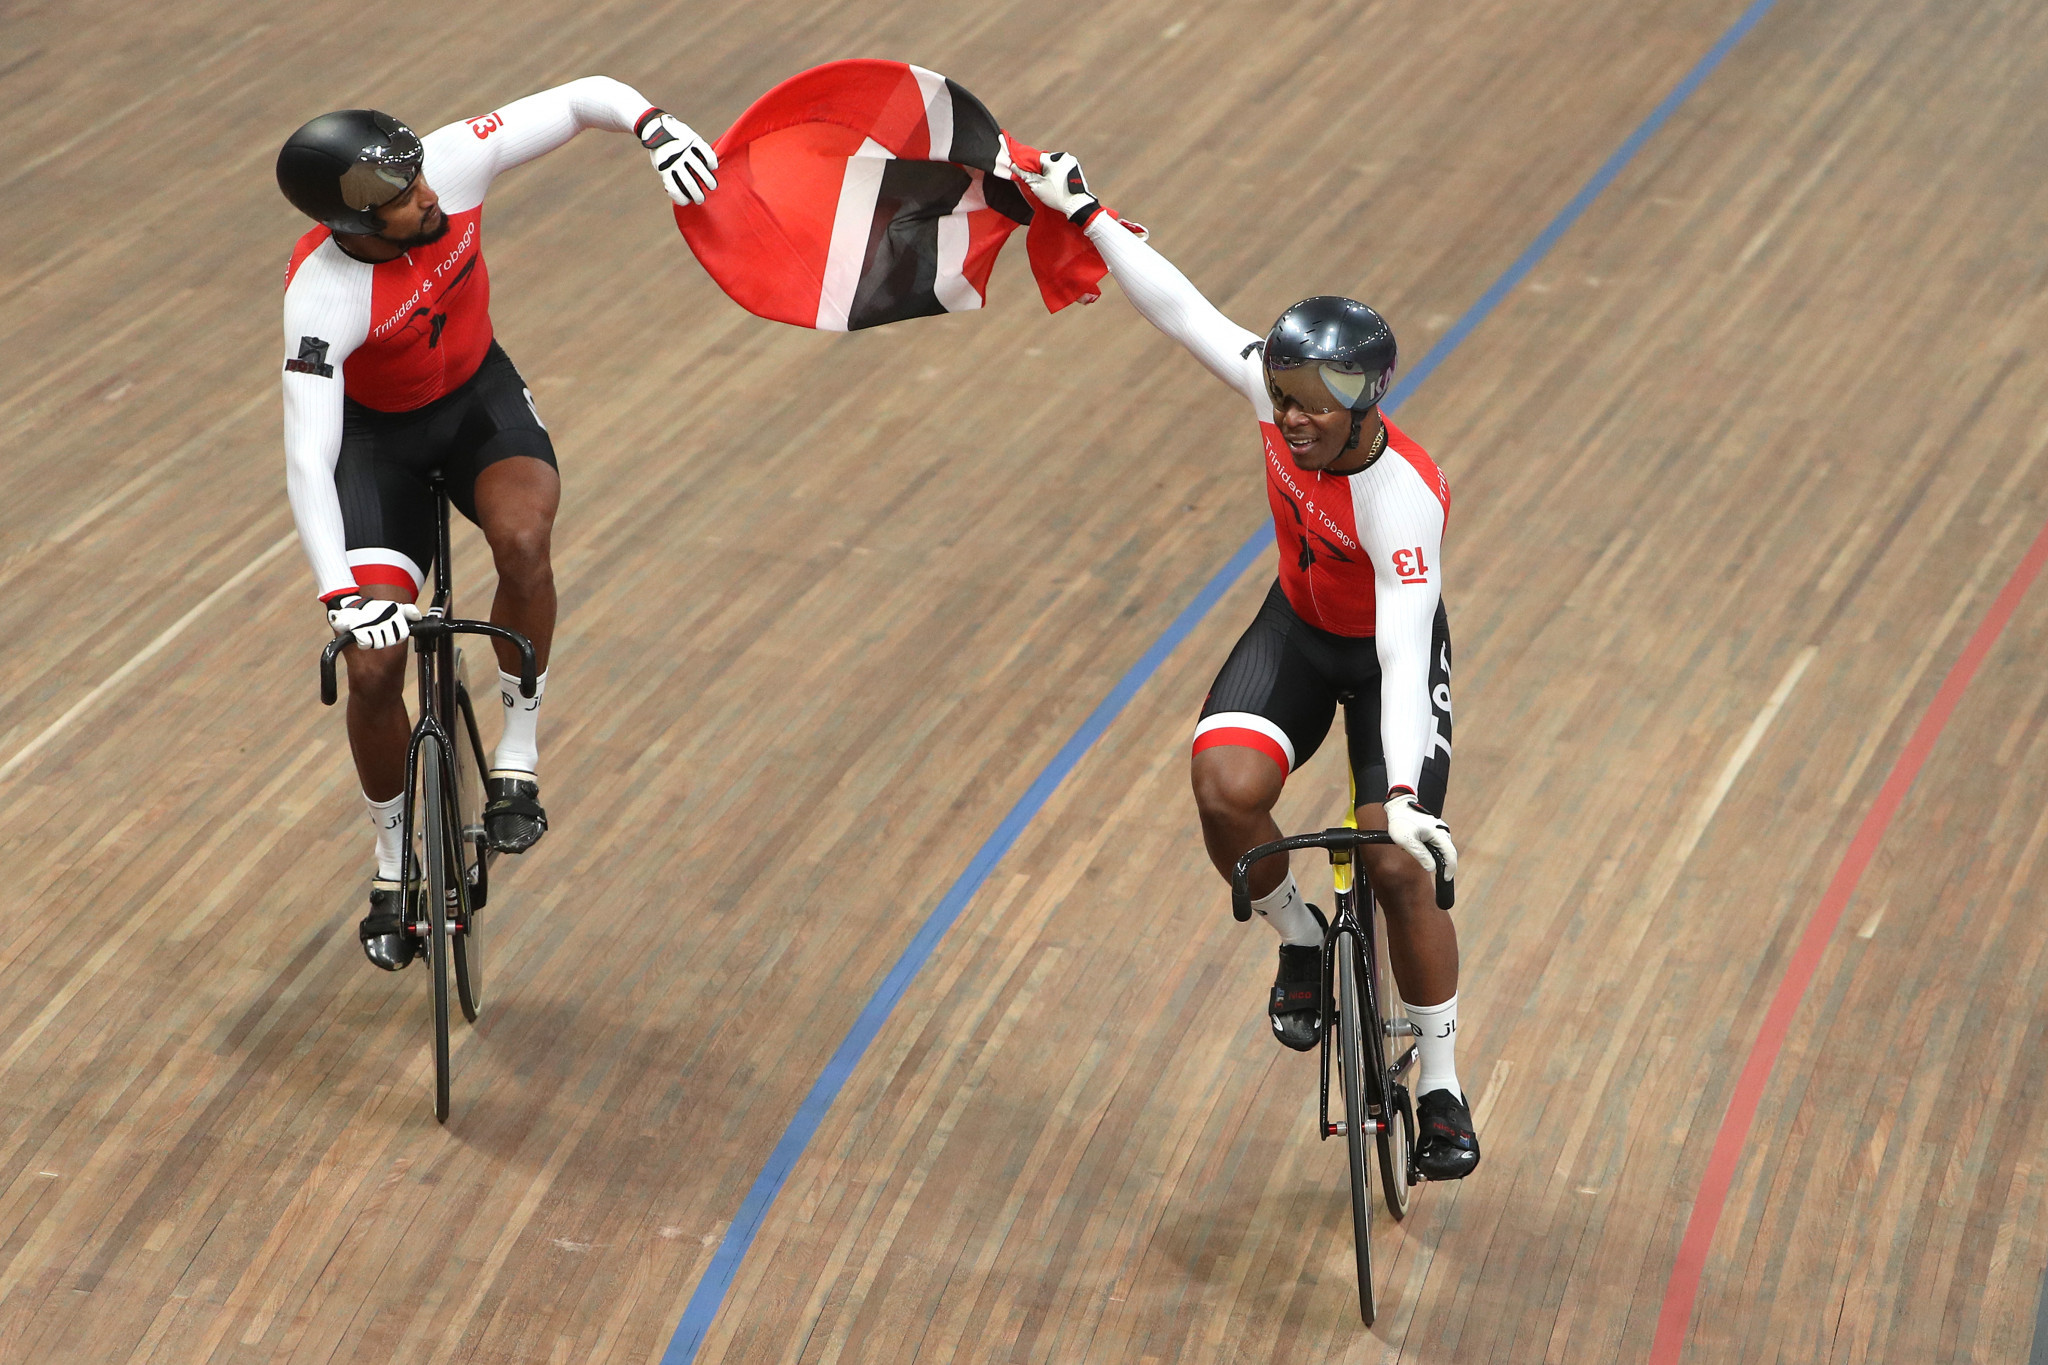 Trinidad and Tobago clinch first gold at Lima 2019 as team sprinters triumph